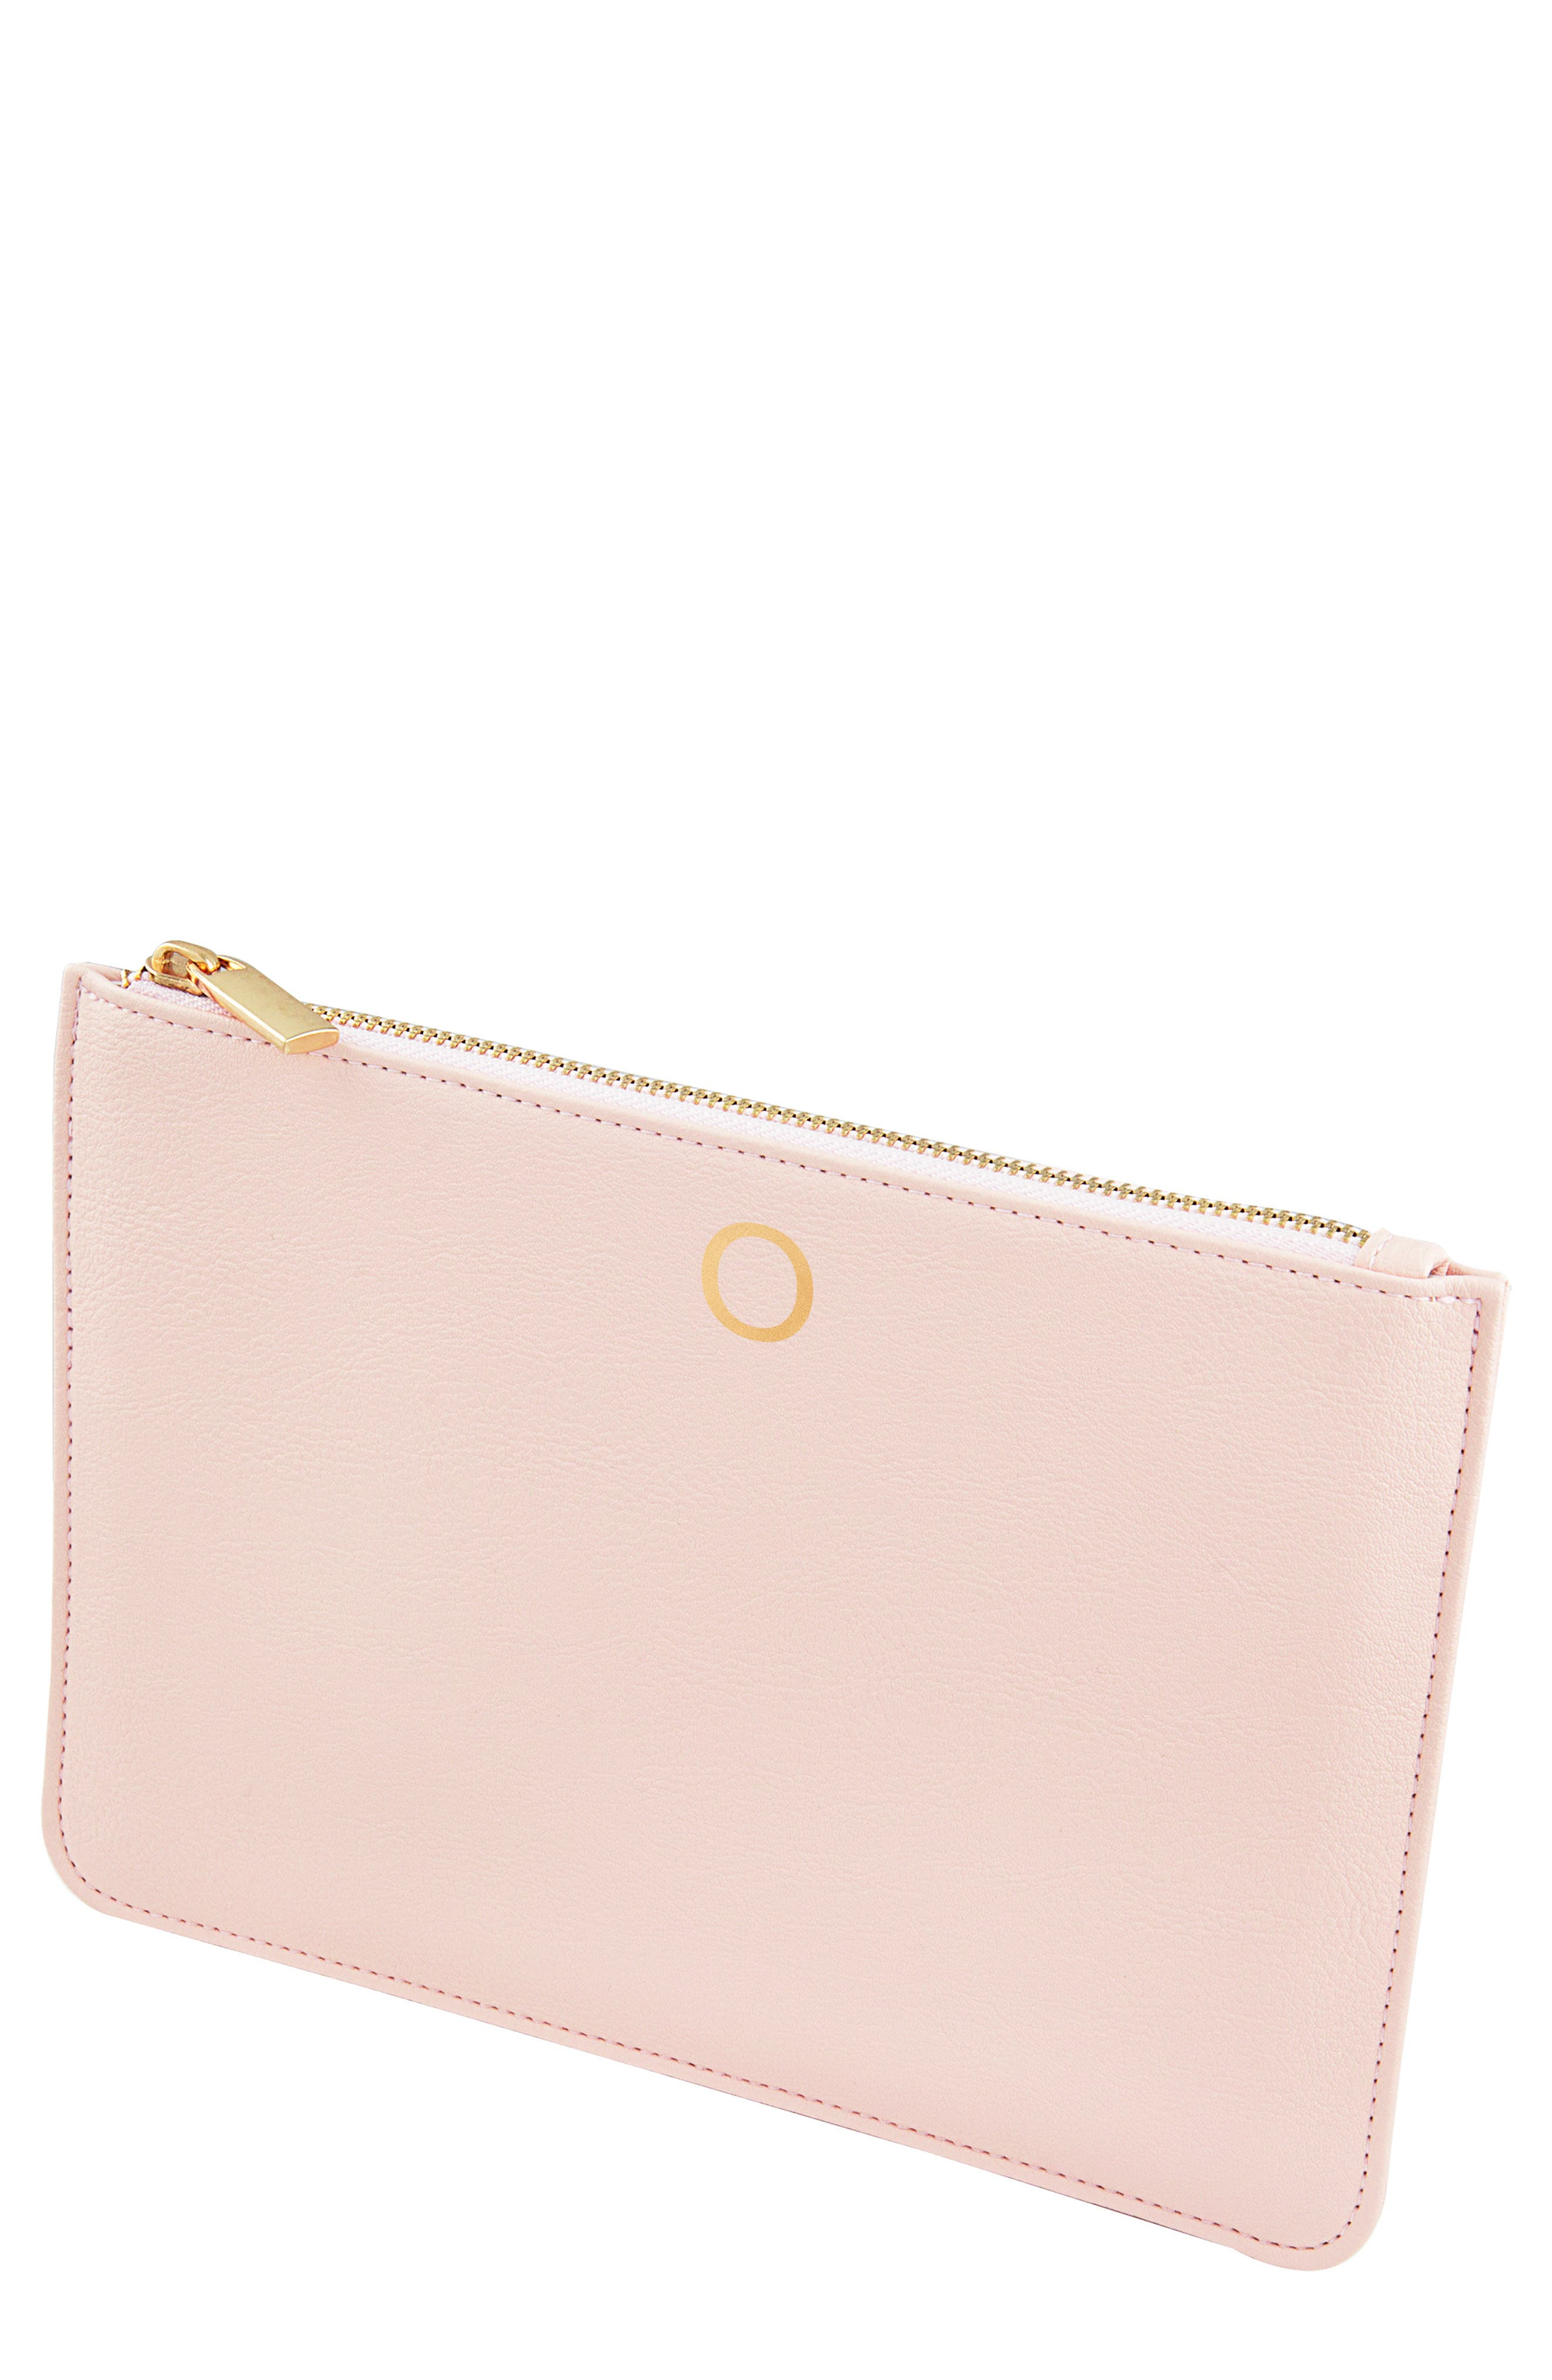 Personalized Faux Leather Pouch